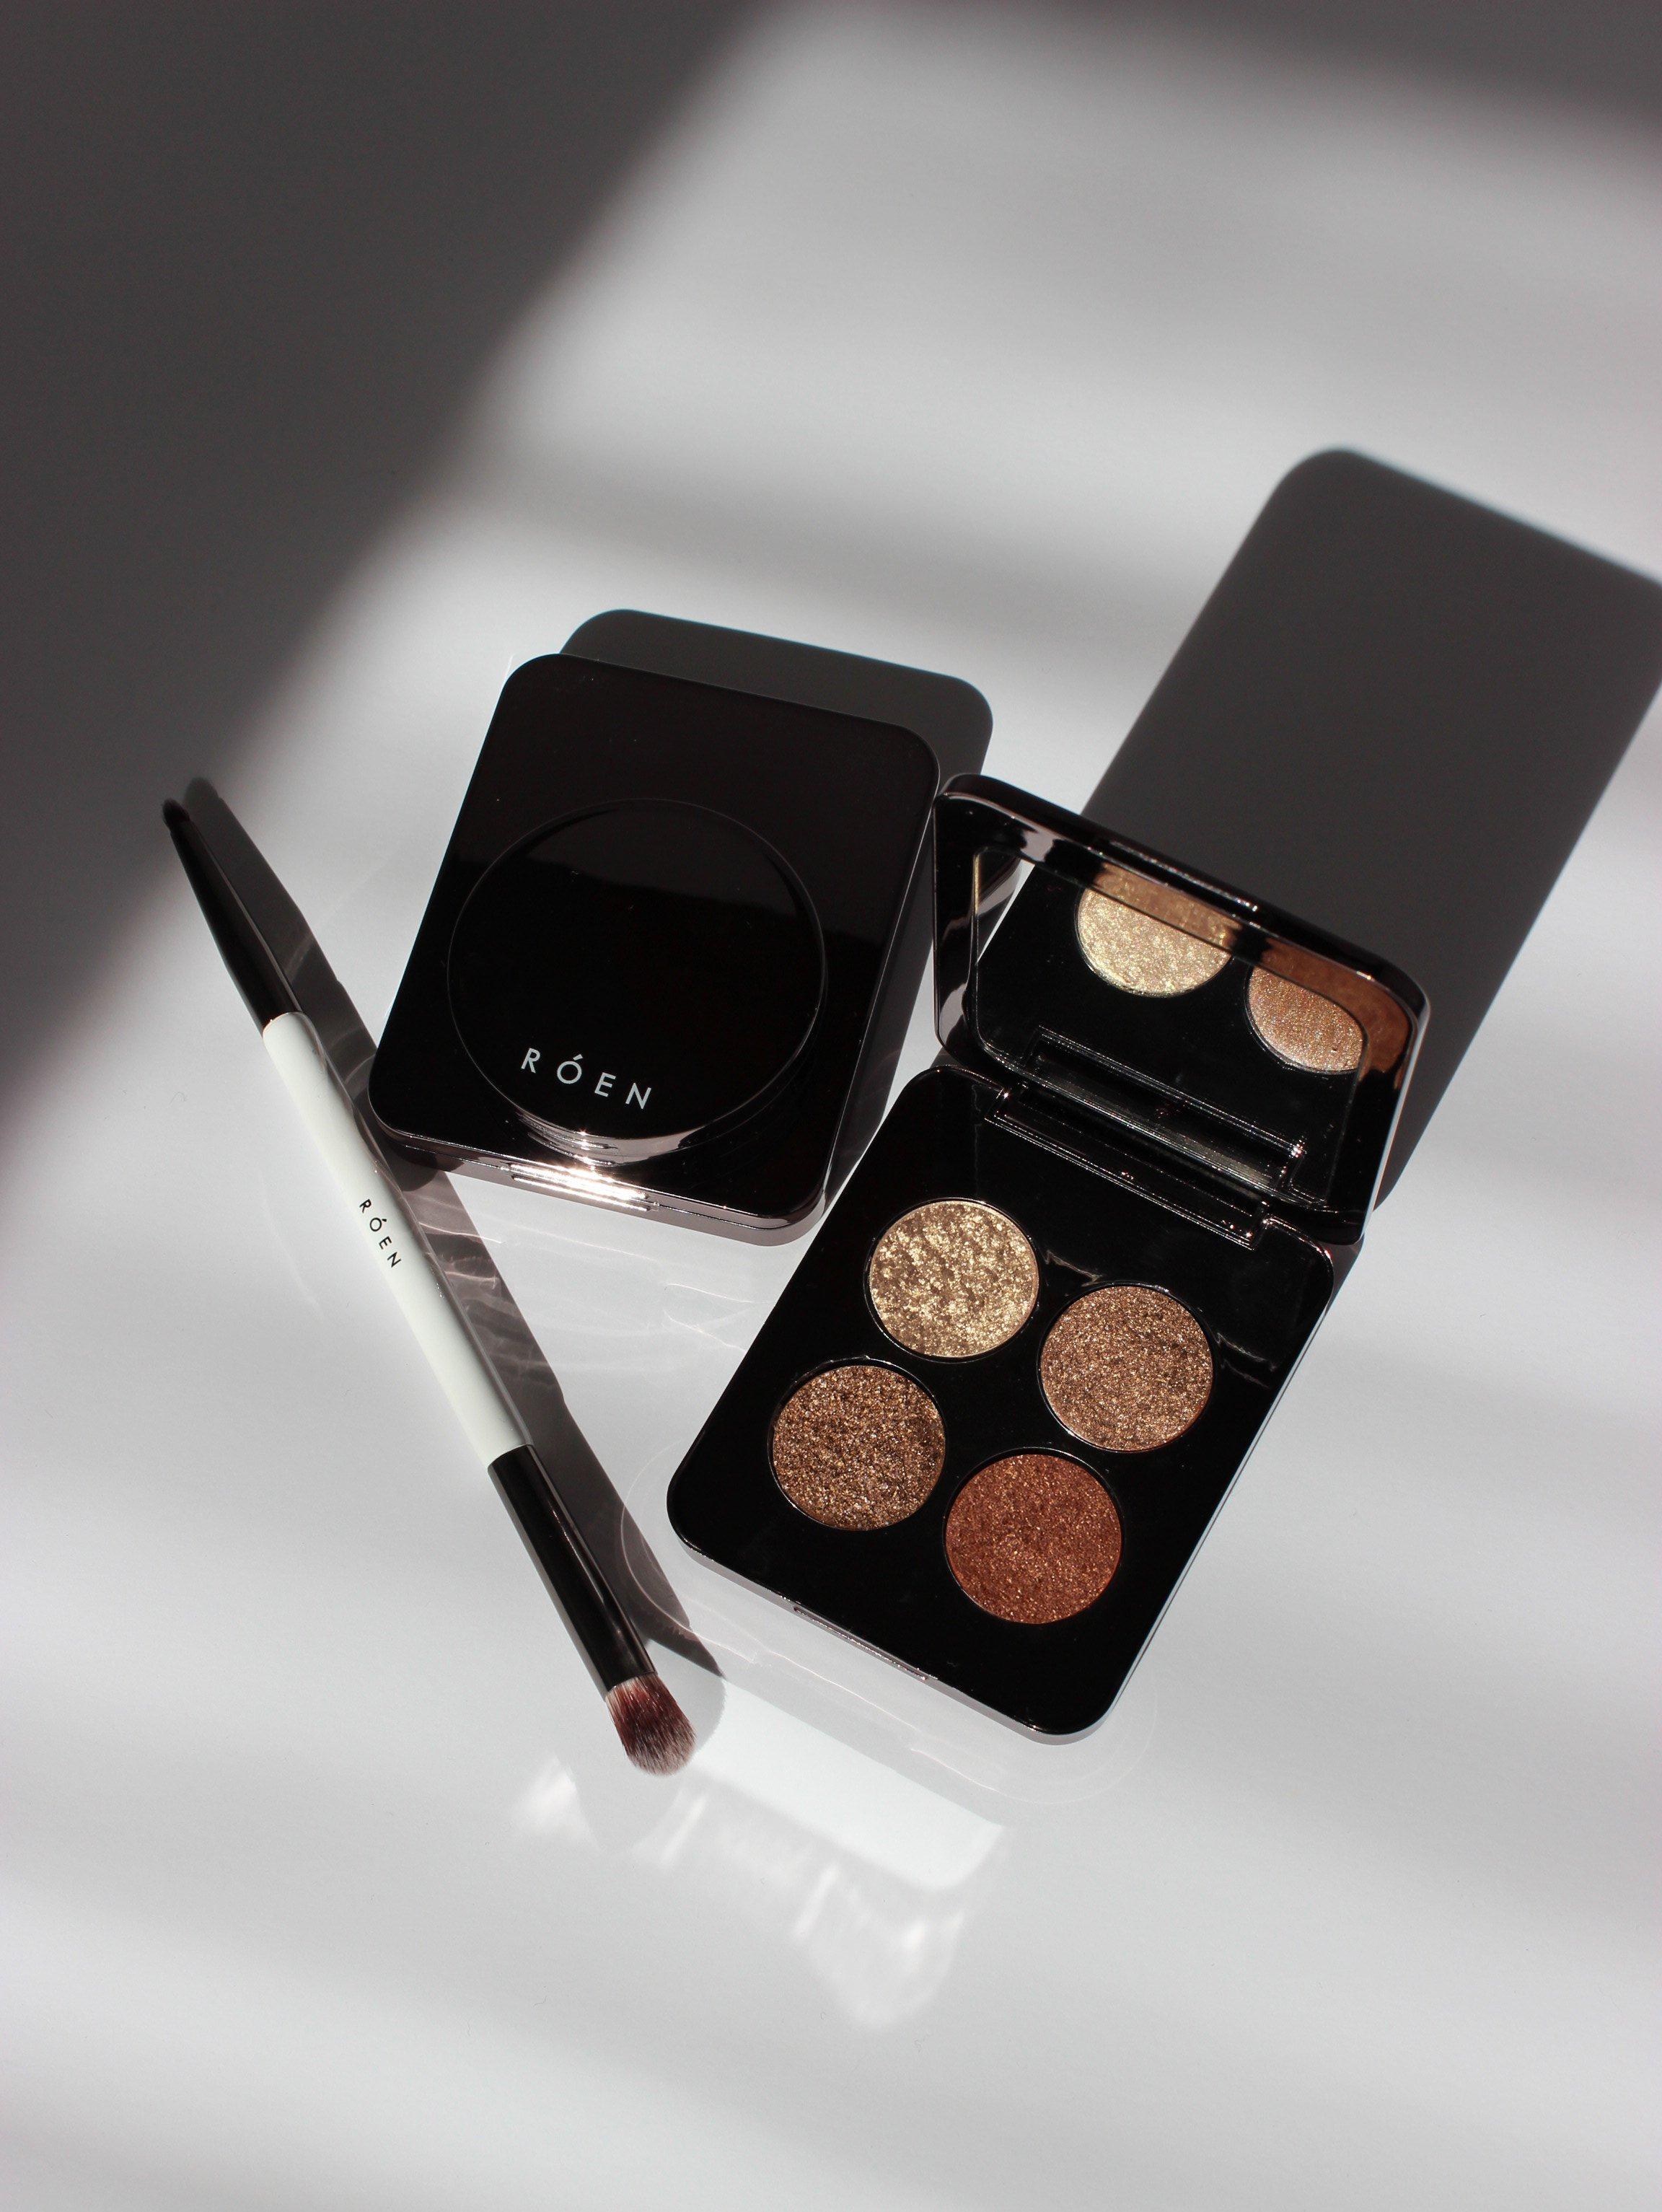 RÓEN 75° Palette - This newly released brand by celebrity makeup artist, Nikki DeRoest, features creamy eyeshadow palettes that are certainly worth the hype. Easy application, timeless shades, and clean formulas…you can't get better than that.